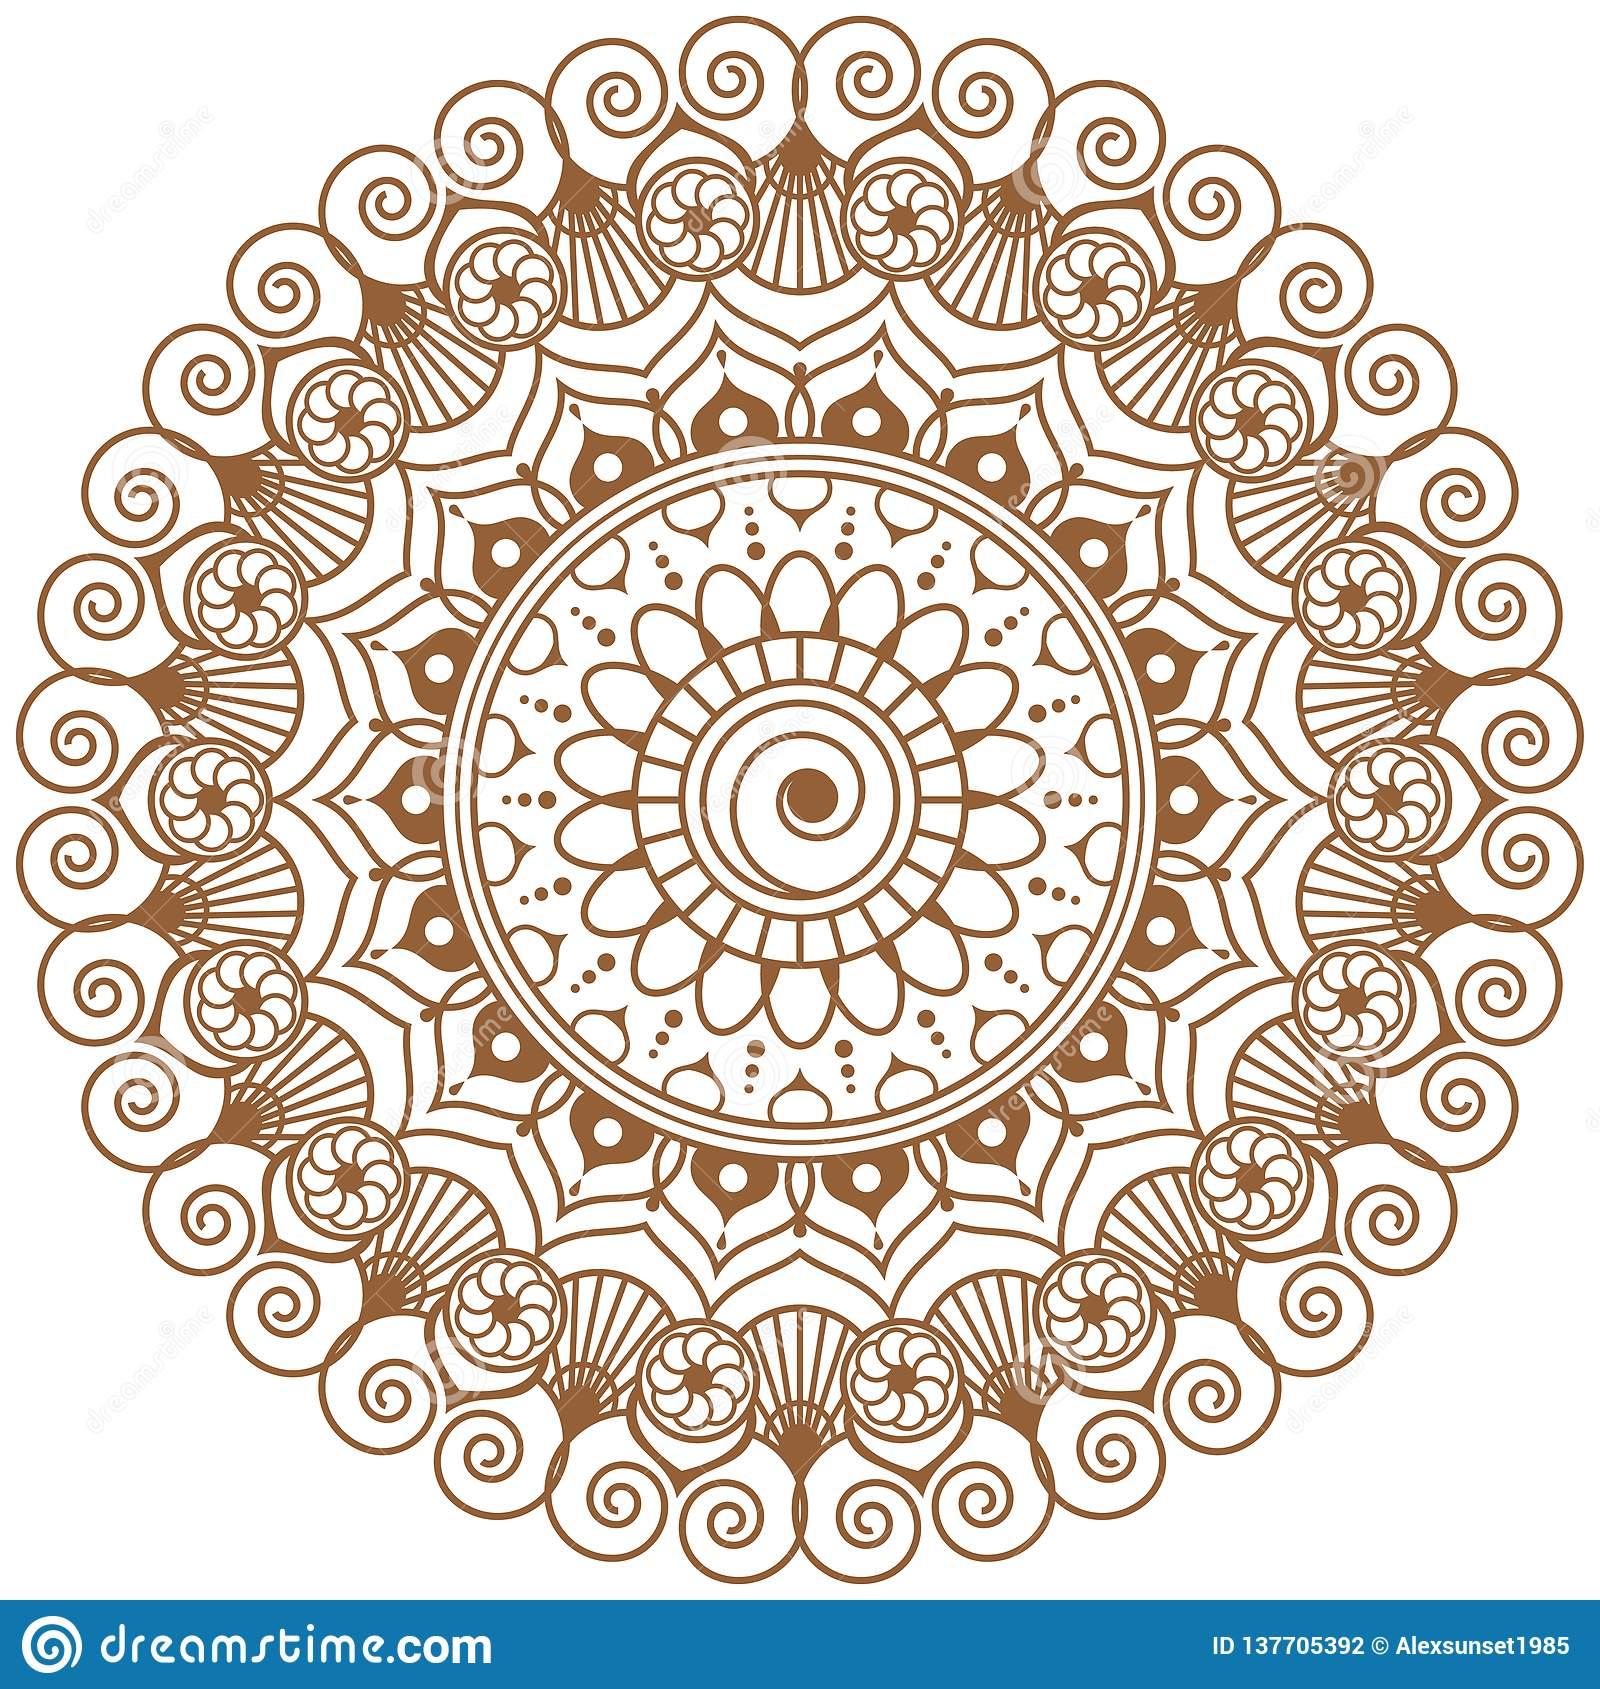 7a615af726573 Mehndi mandala brown flower in Indian henna style for tatoo or card. Vector  illustration isolated on white background